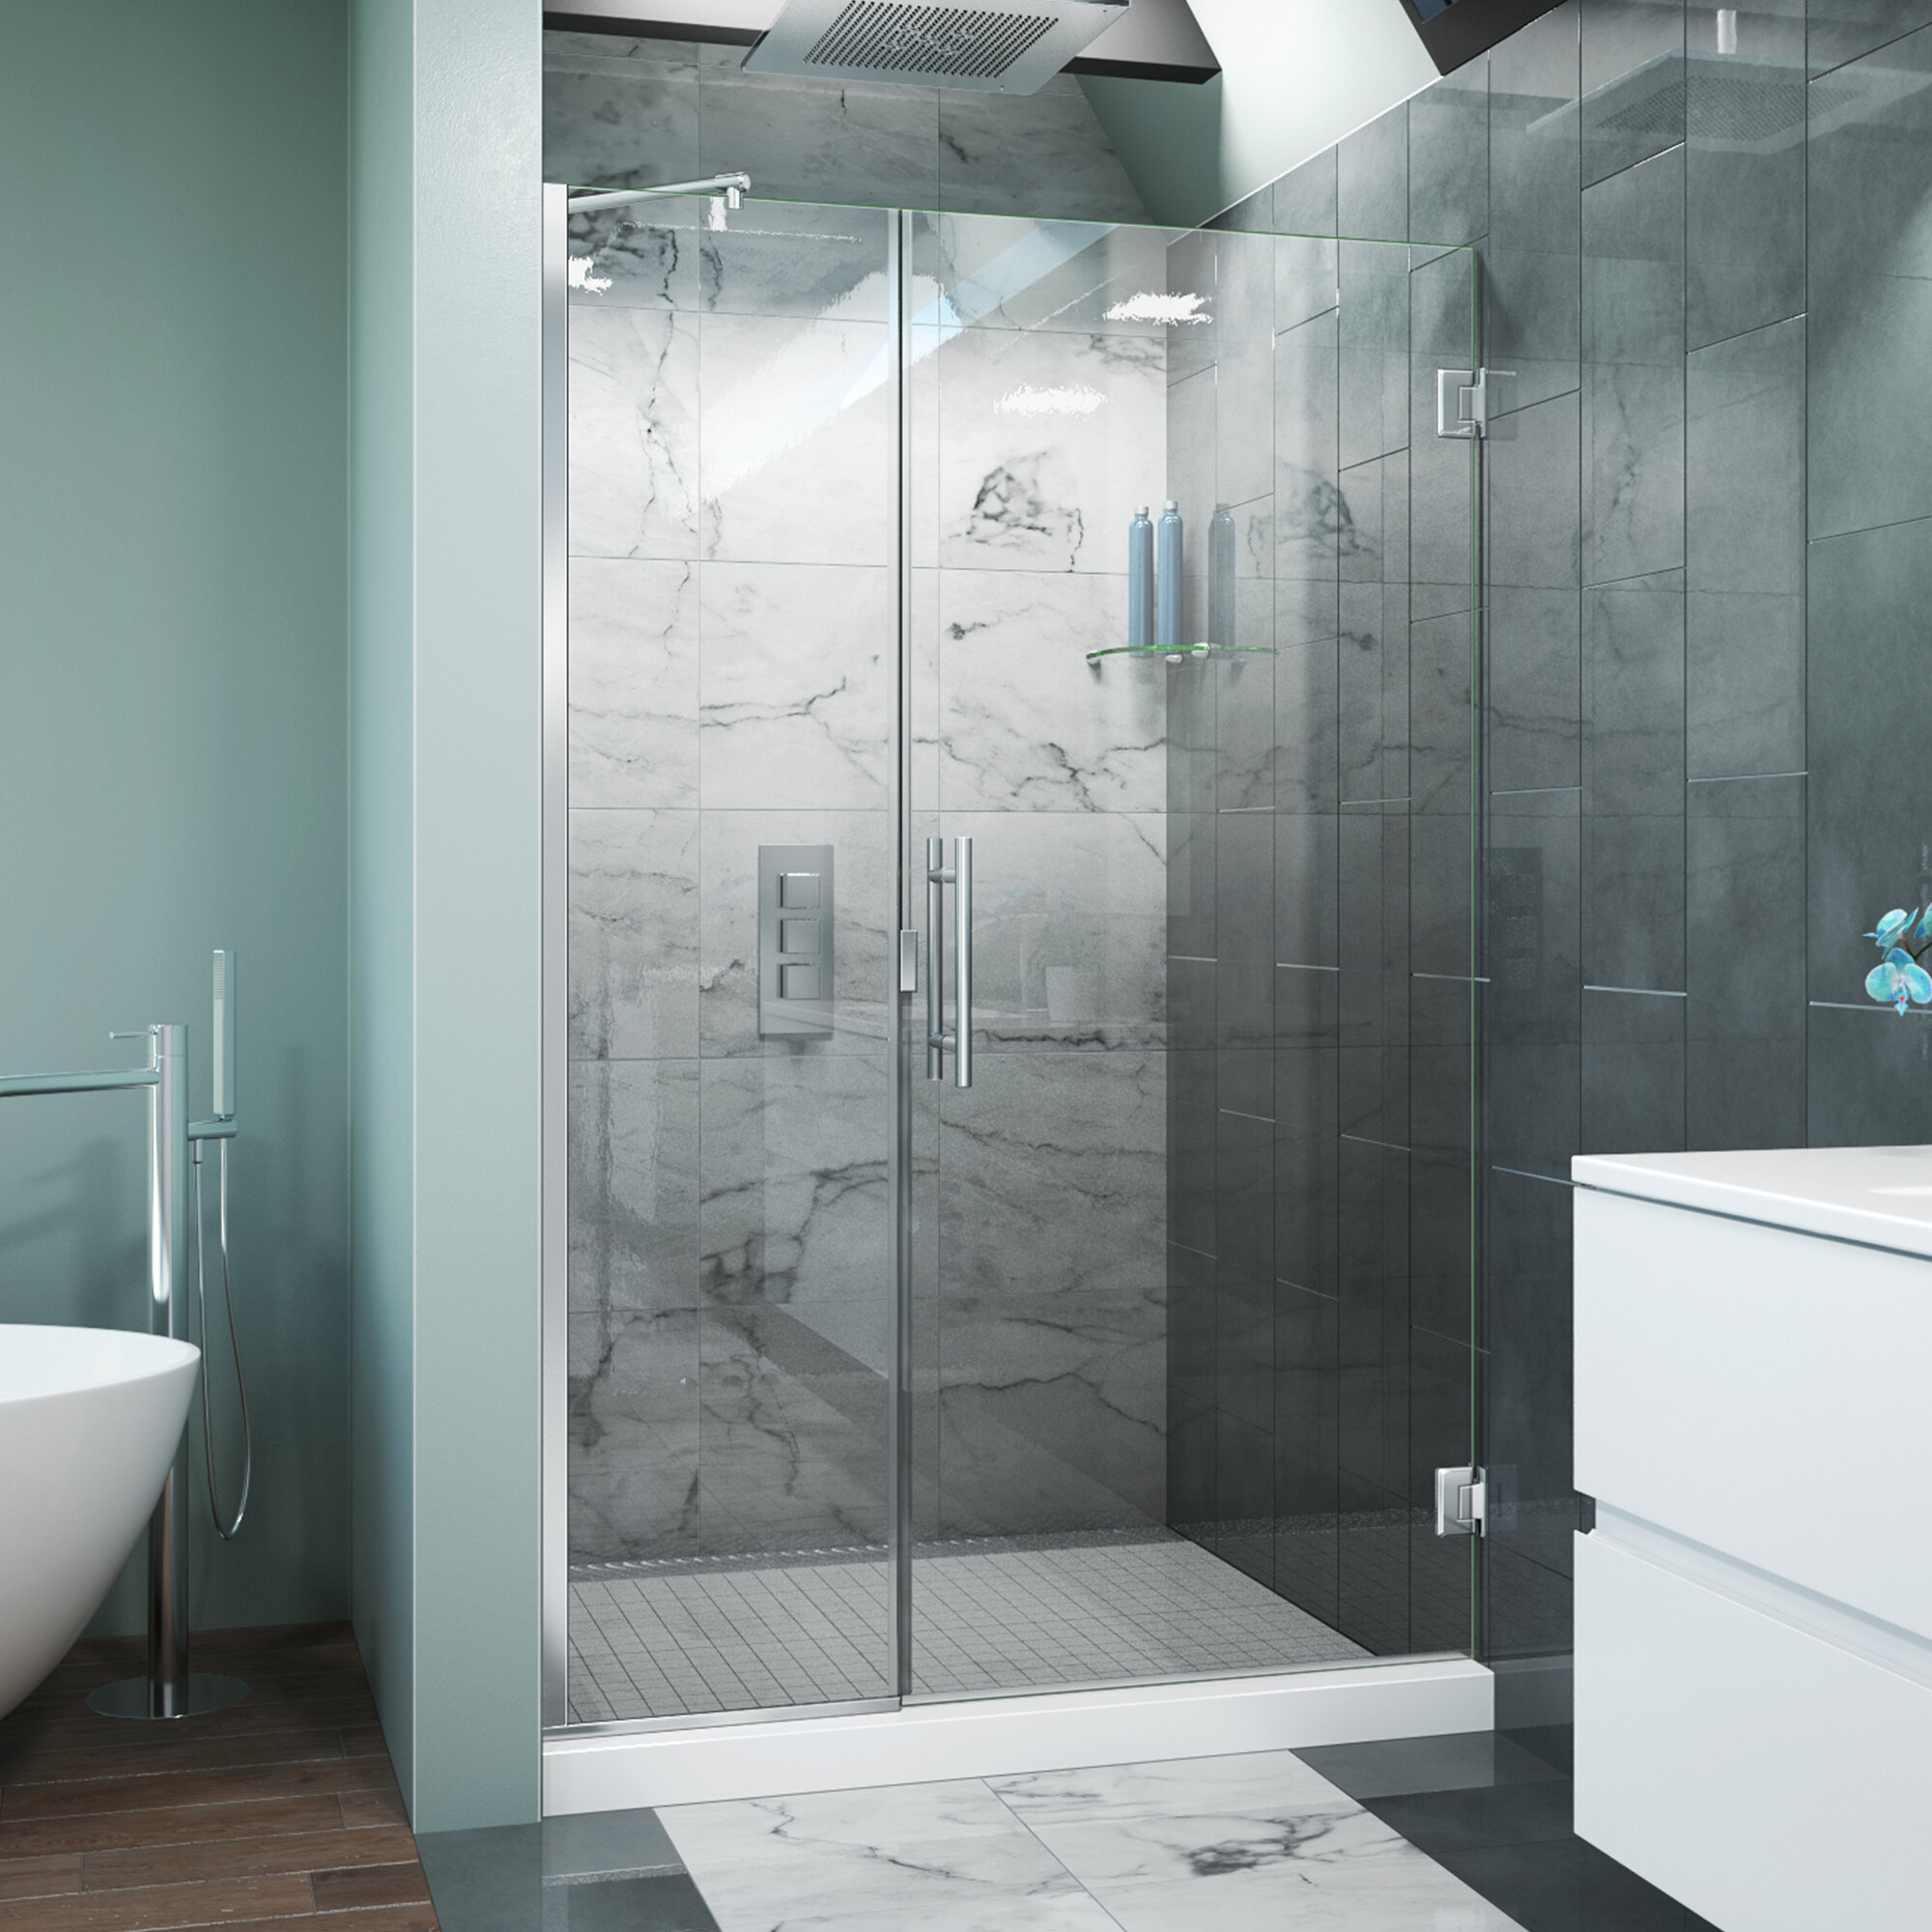 Arizona Shower Door Scottsdale 48 X 72 Hinged Frameless Shower Door With Invisible Shield By Clean X Wayfair